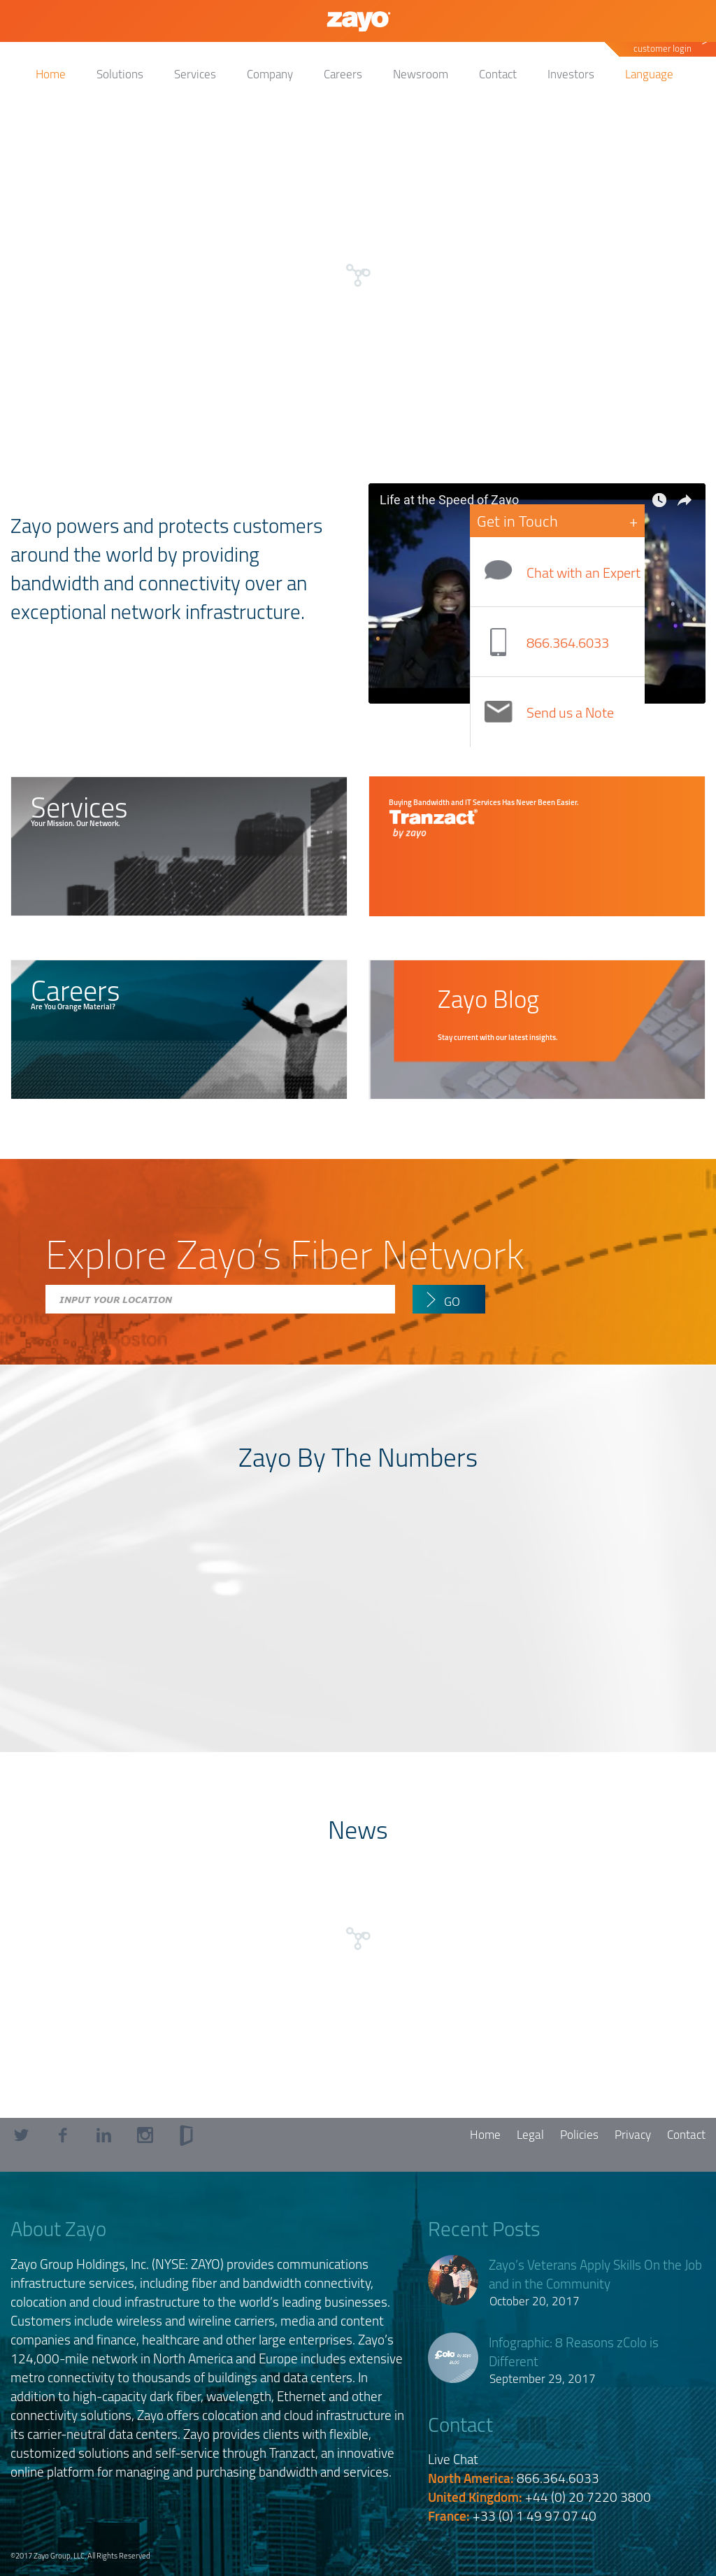 Zayo Group Competitors, Revenue and Employees - Owler